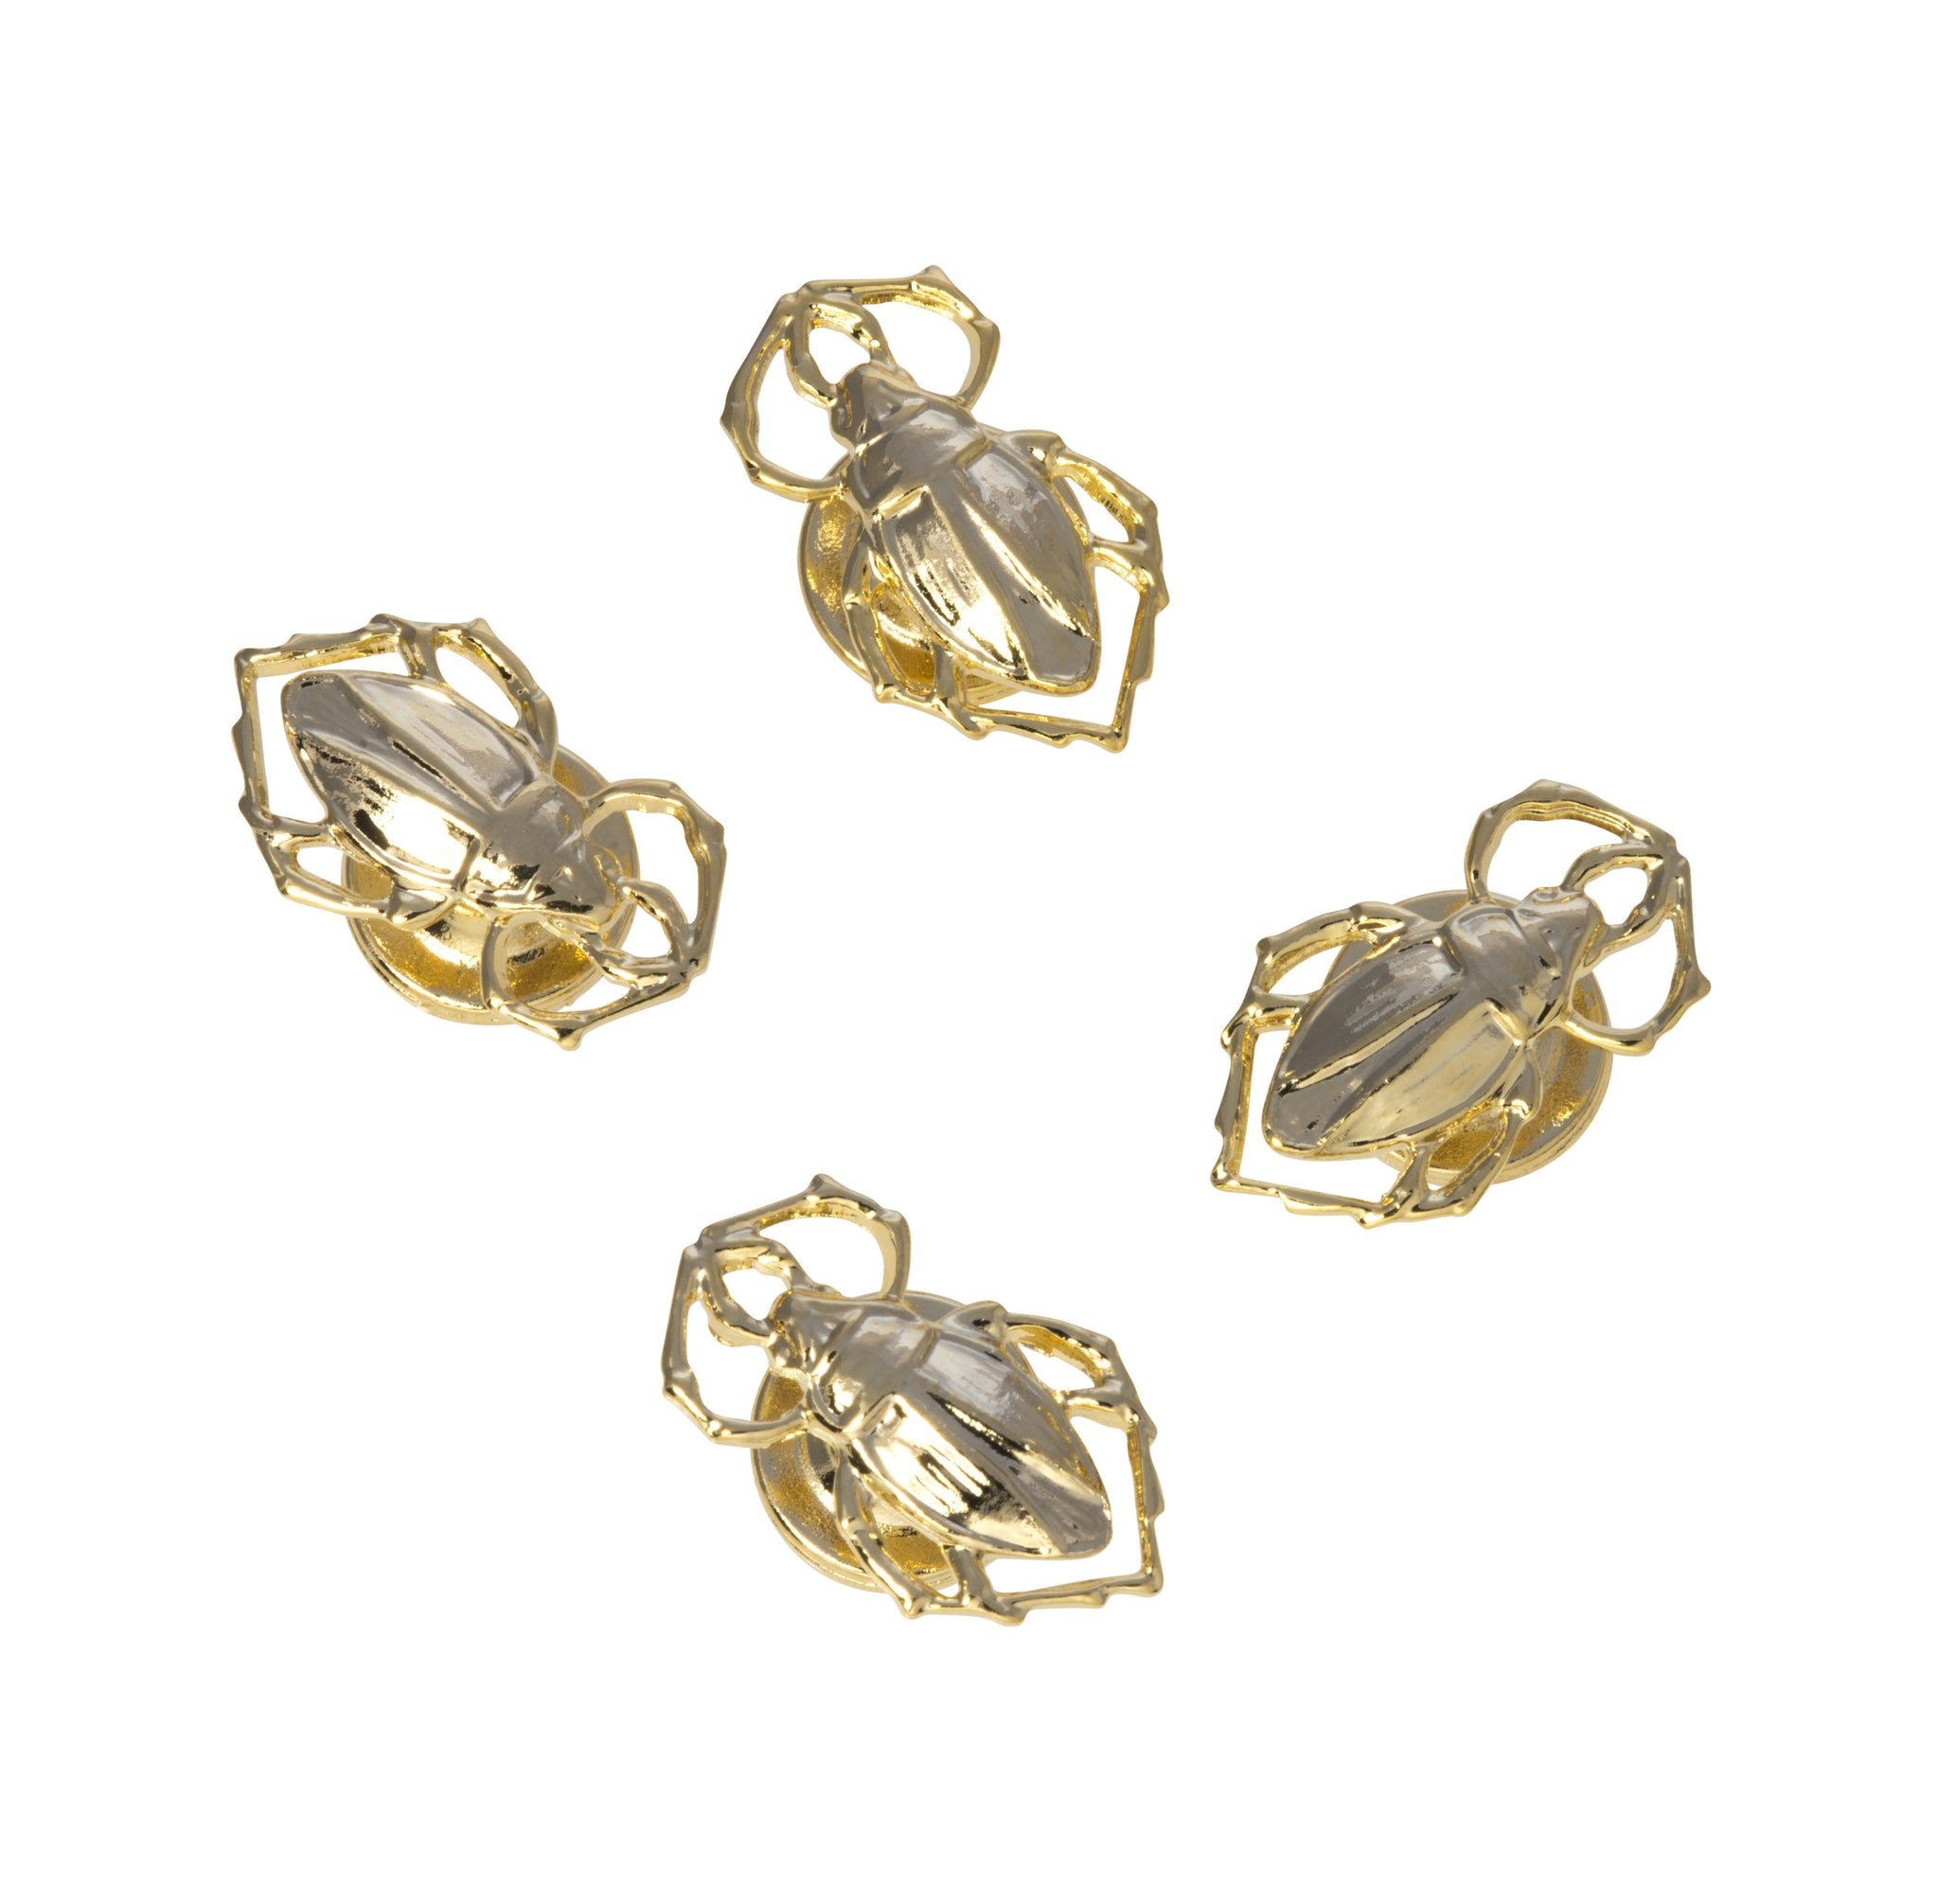 Goldbug Shirt Studs